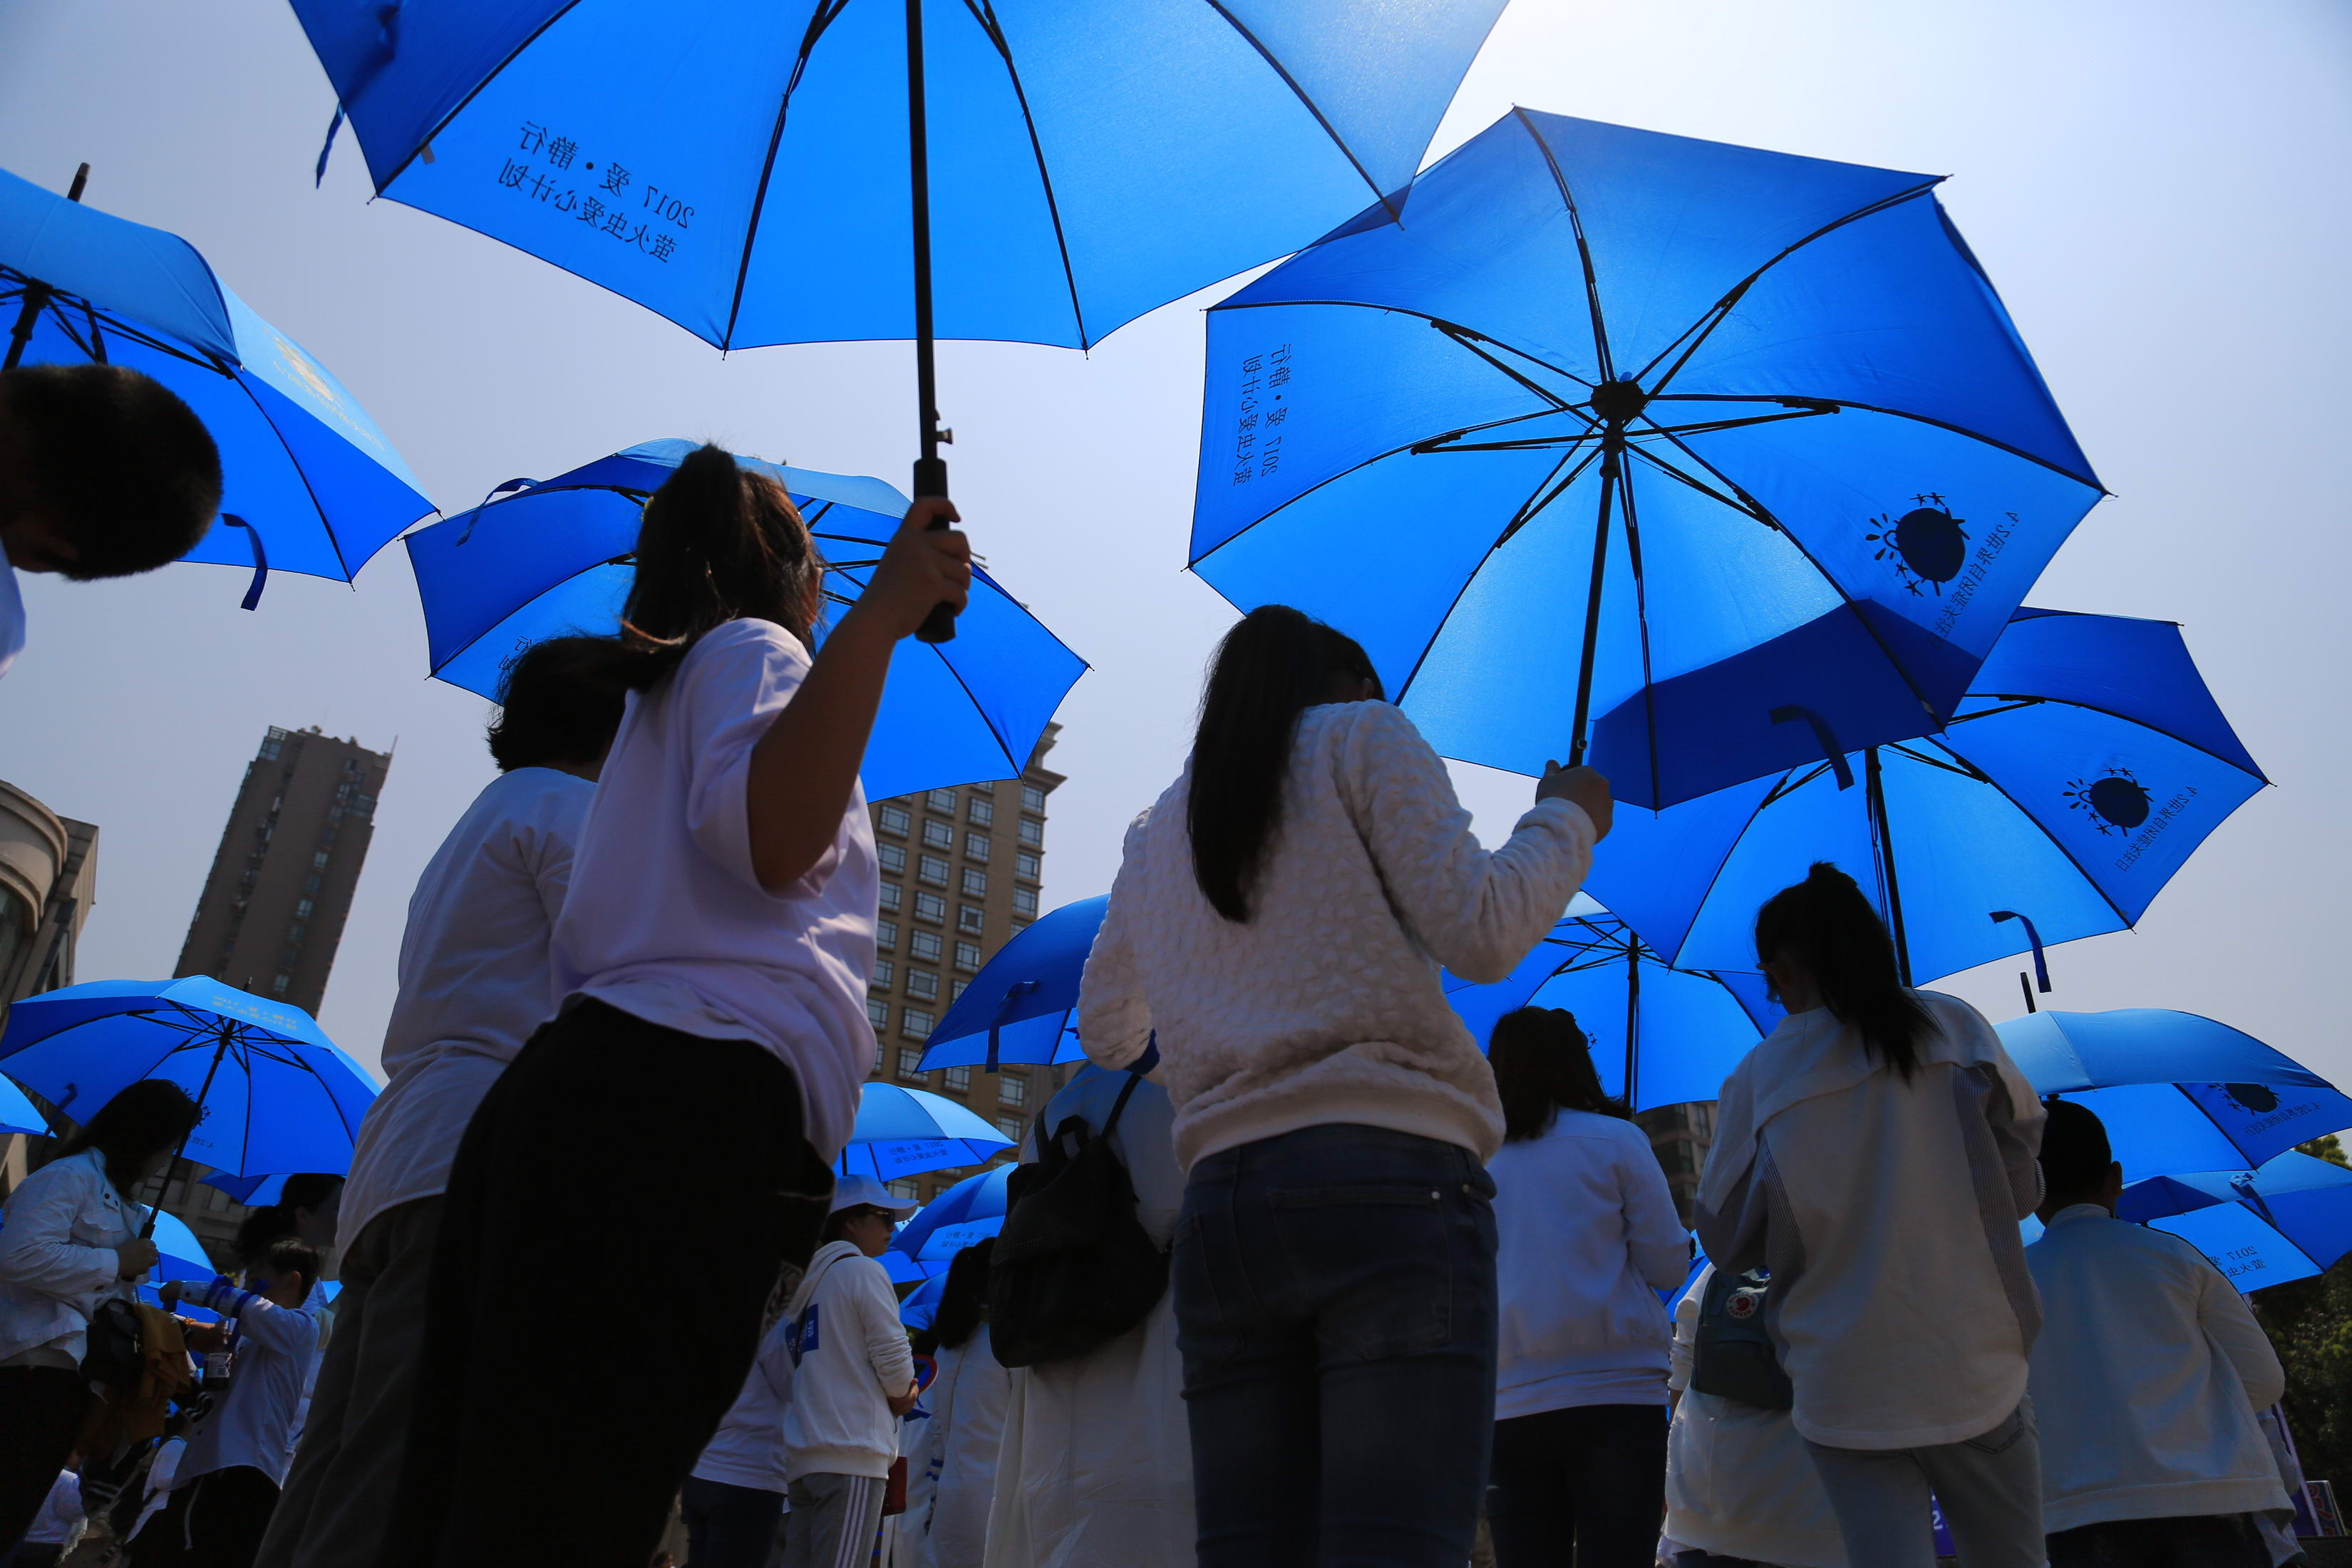 Volunteers holding blue umbrellas walk for 5 kilometers with no speaking on the World Autism Awareness Day at Pujiang County on April 2, 2017 in Jinhua, Zhejiang Province of China.